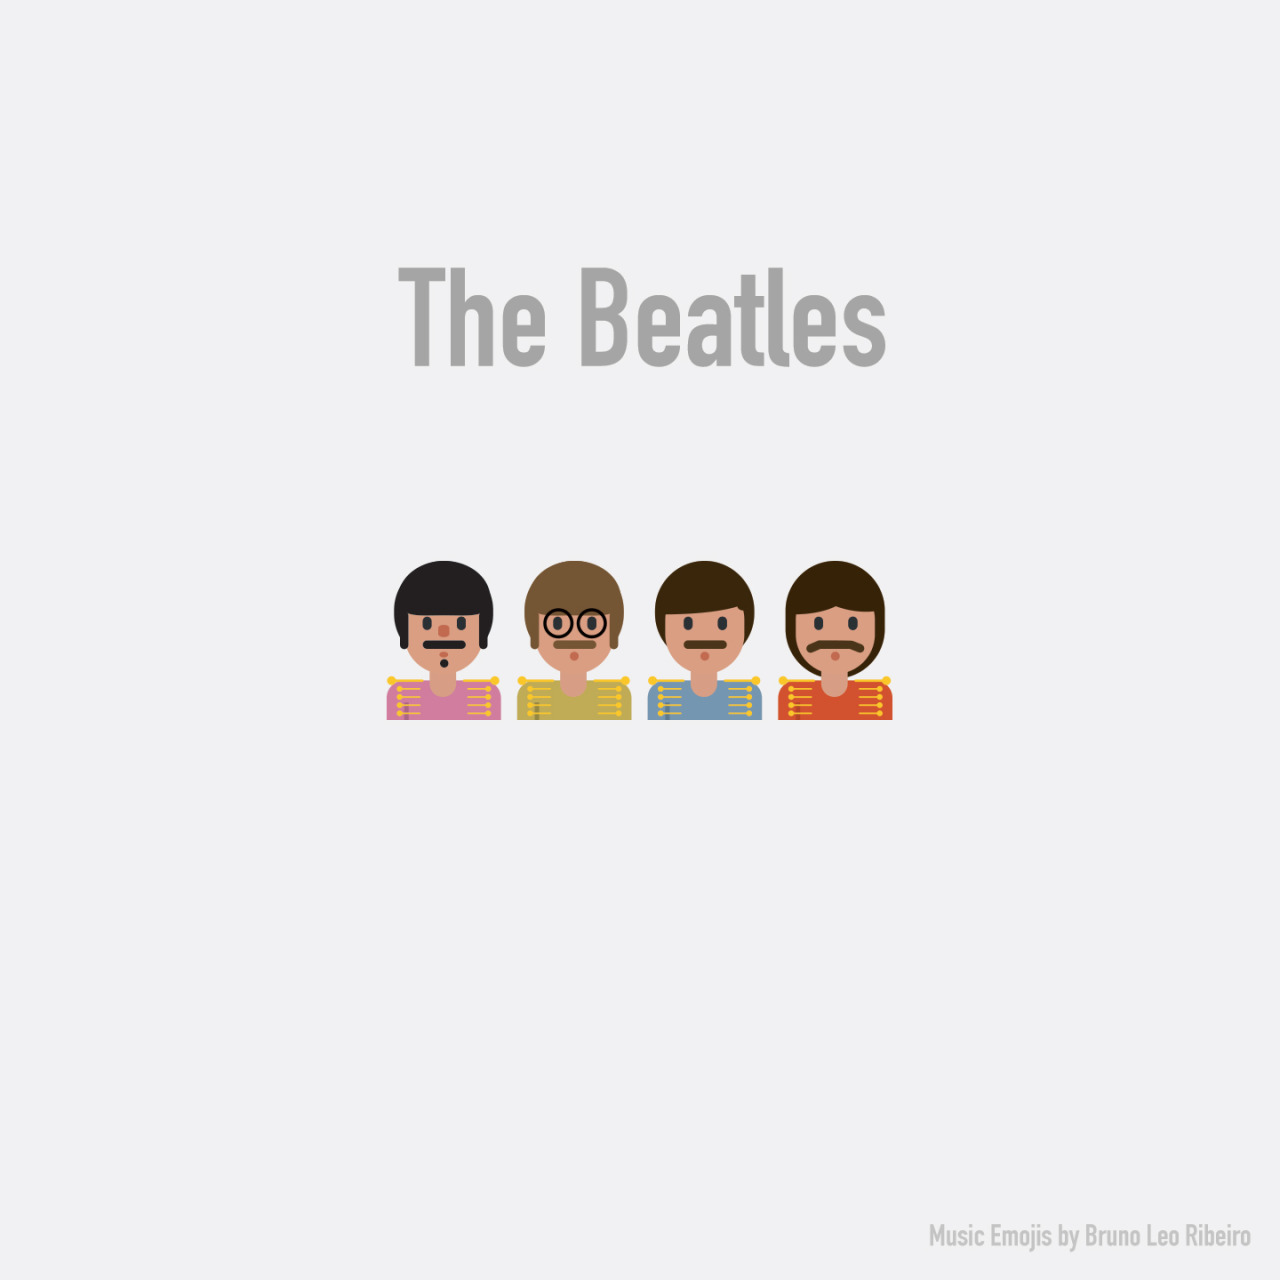 The Beatles emoji